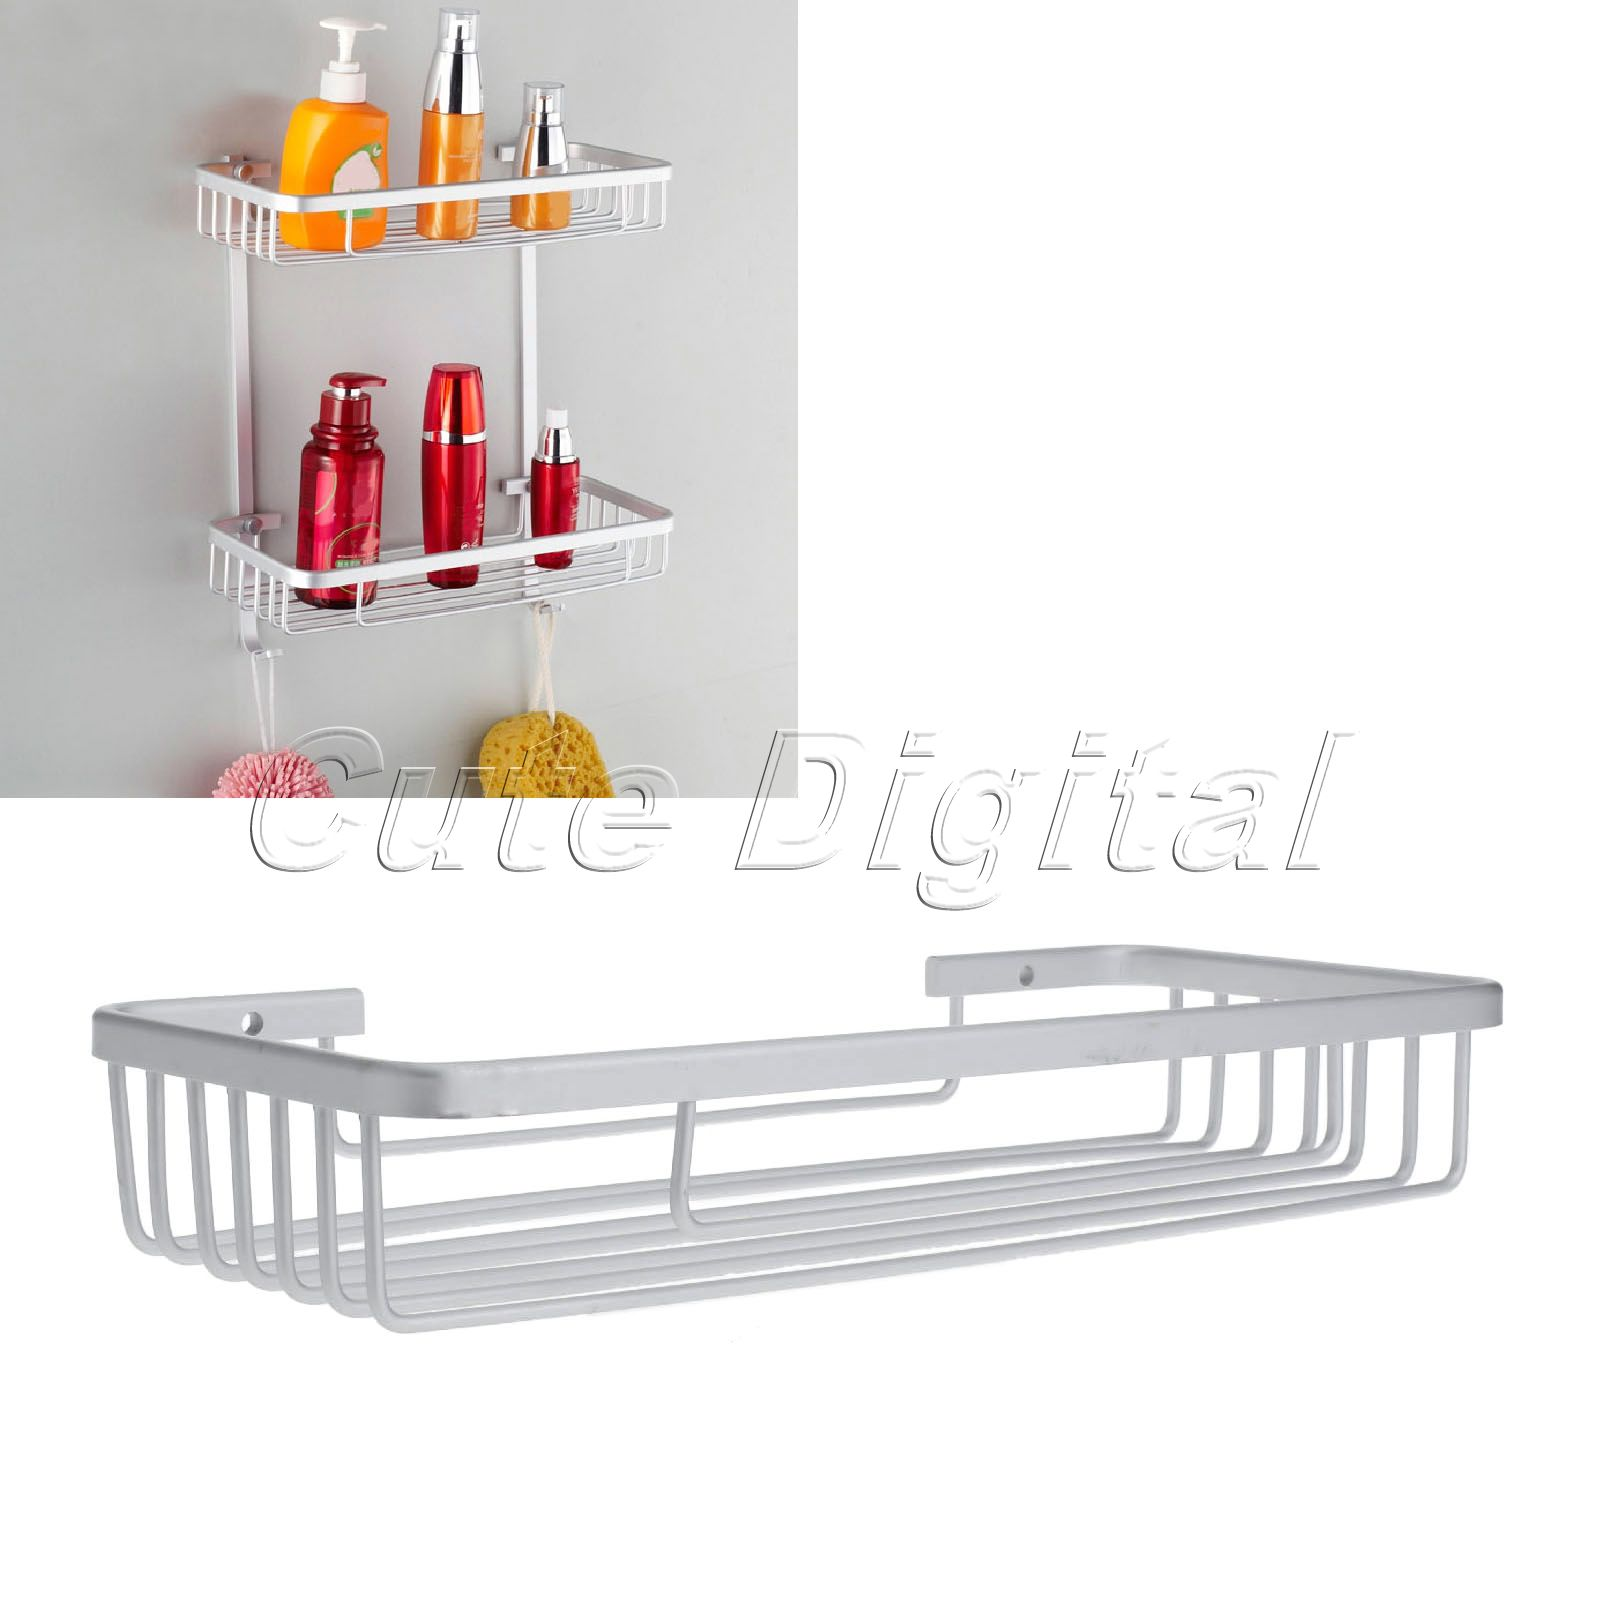 Single Tier Aluminum Bathroom Storage basket Soap Shampoo Basket Shelf Bathroom Rack Holder Wall Mounted  Bathroom Accessories universal car windshield swivel mount holder for cell phone mp3 mp4 gps black